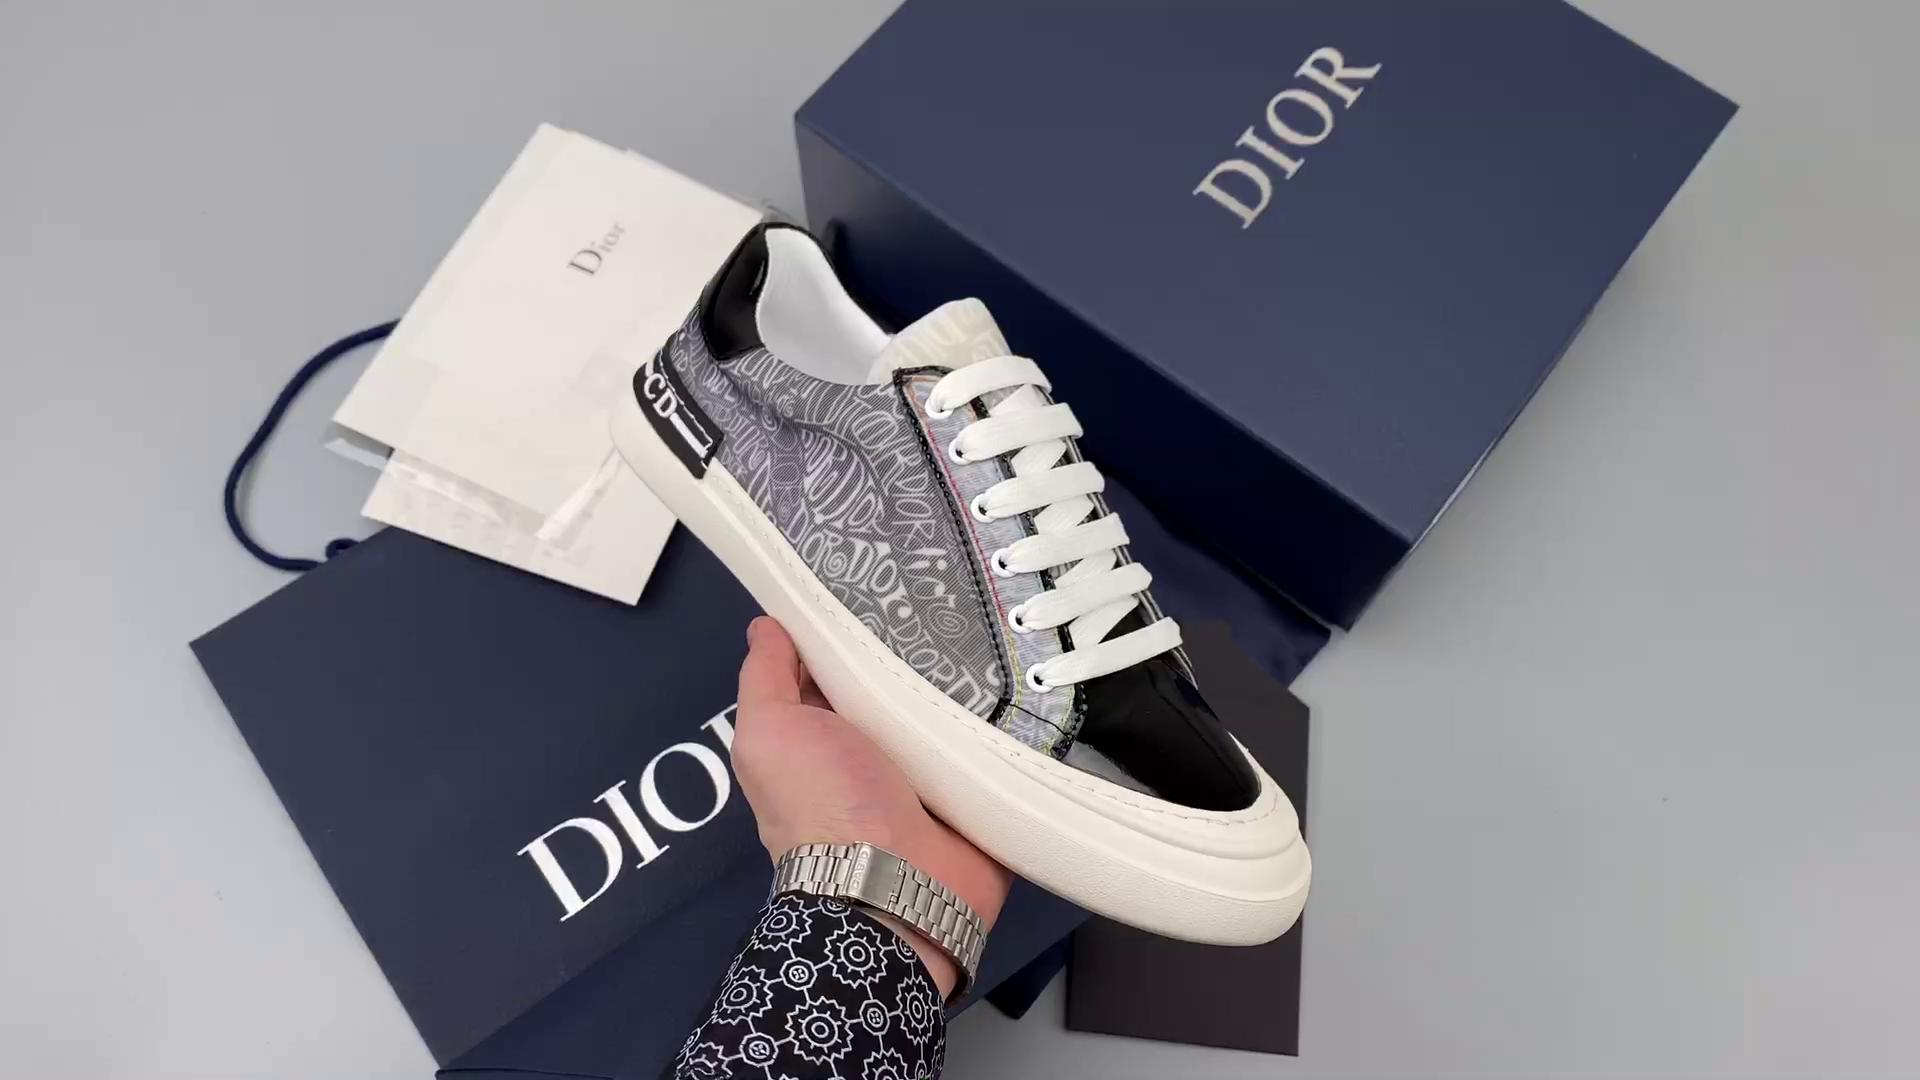 Dior B23 Oblique Low Top Sneakers-莆田红馬复刻鞋